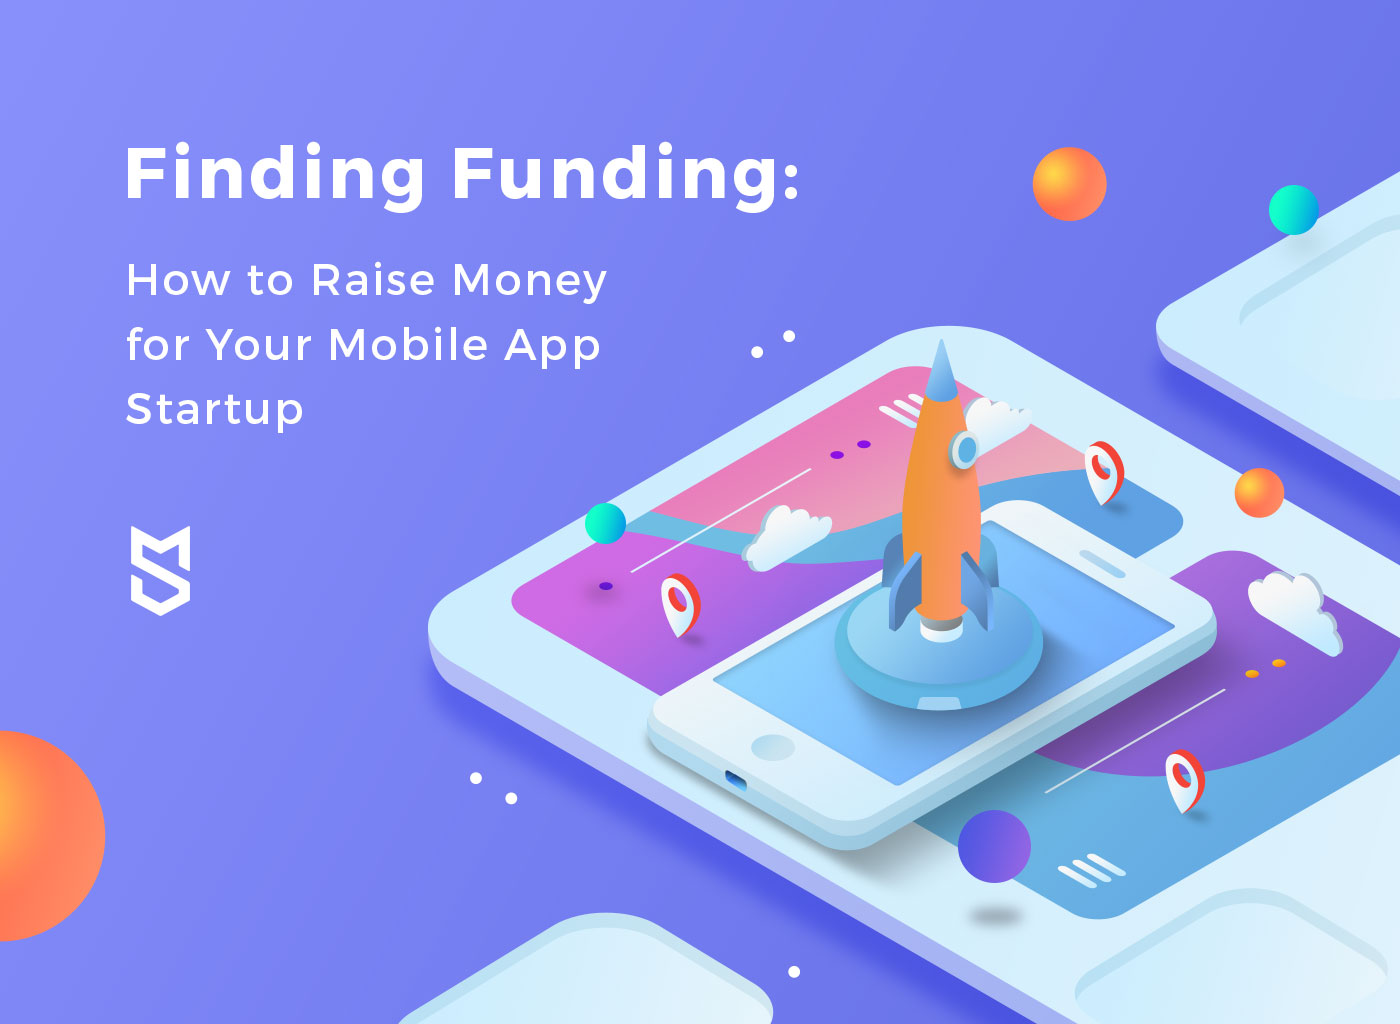 App Funding: How to Raise Money for Your Mobile App Startup